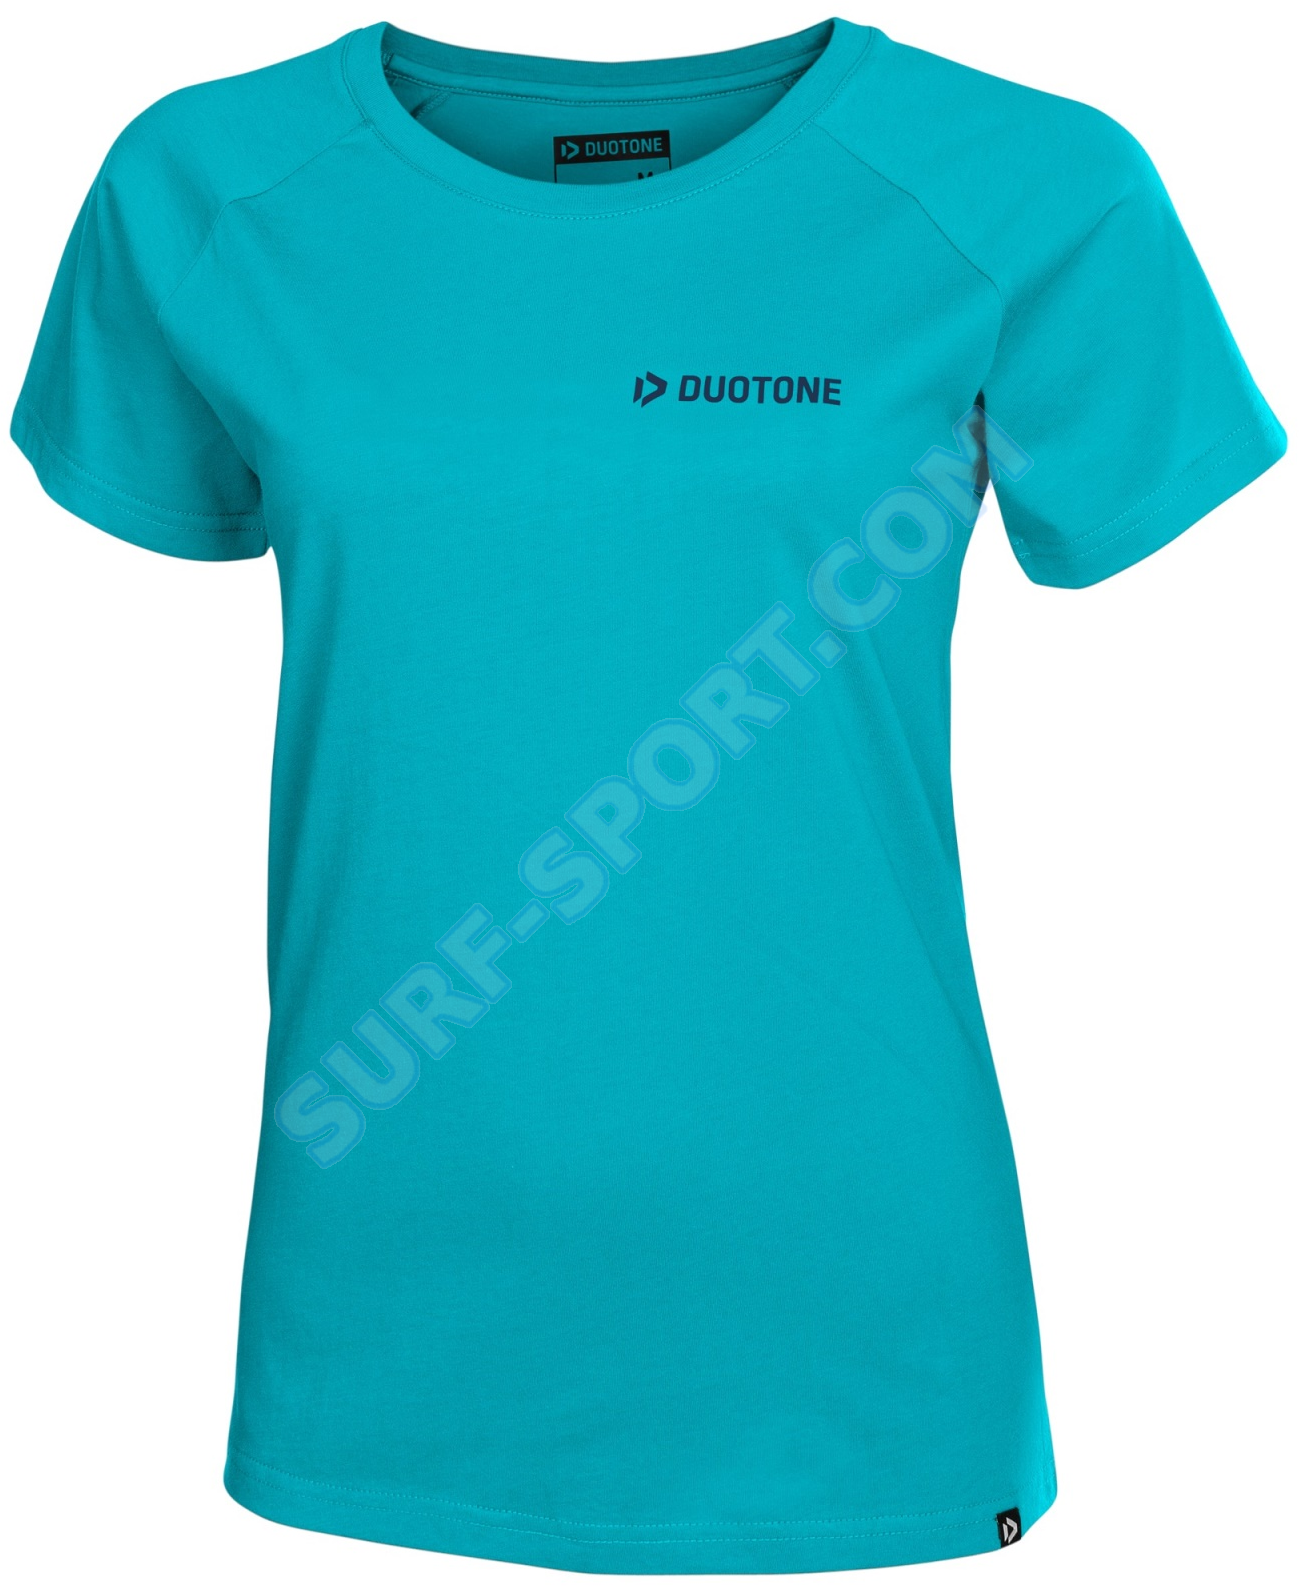 44903-5007_Duotone Tee Waves Women 2019.png